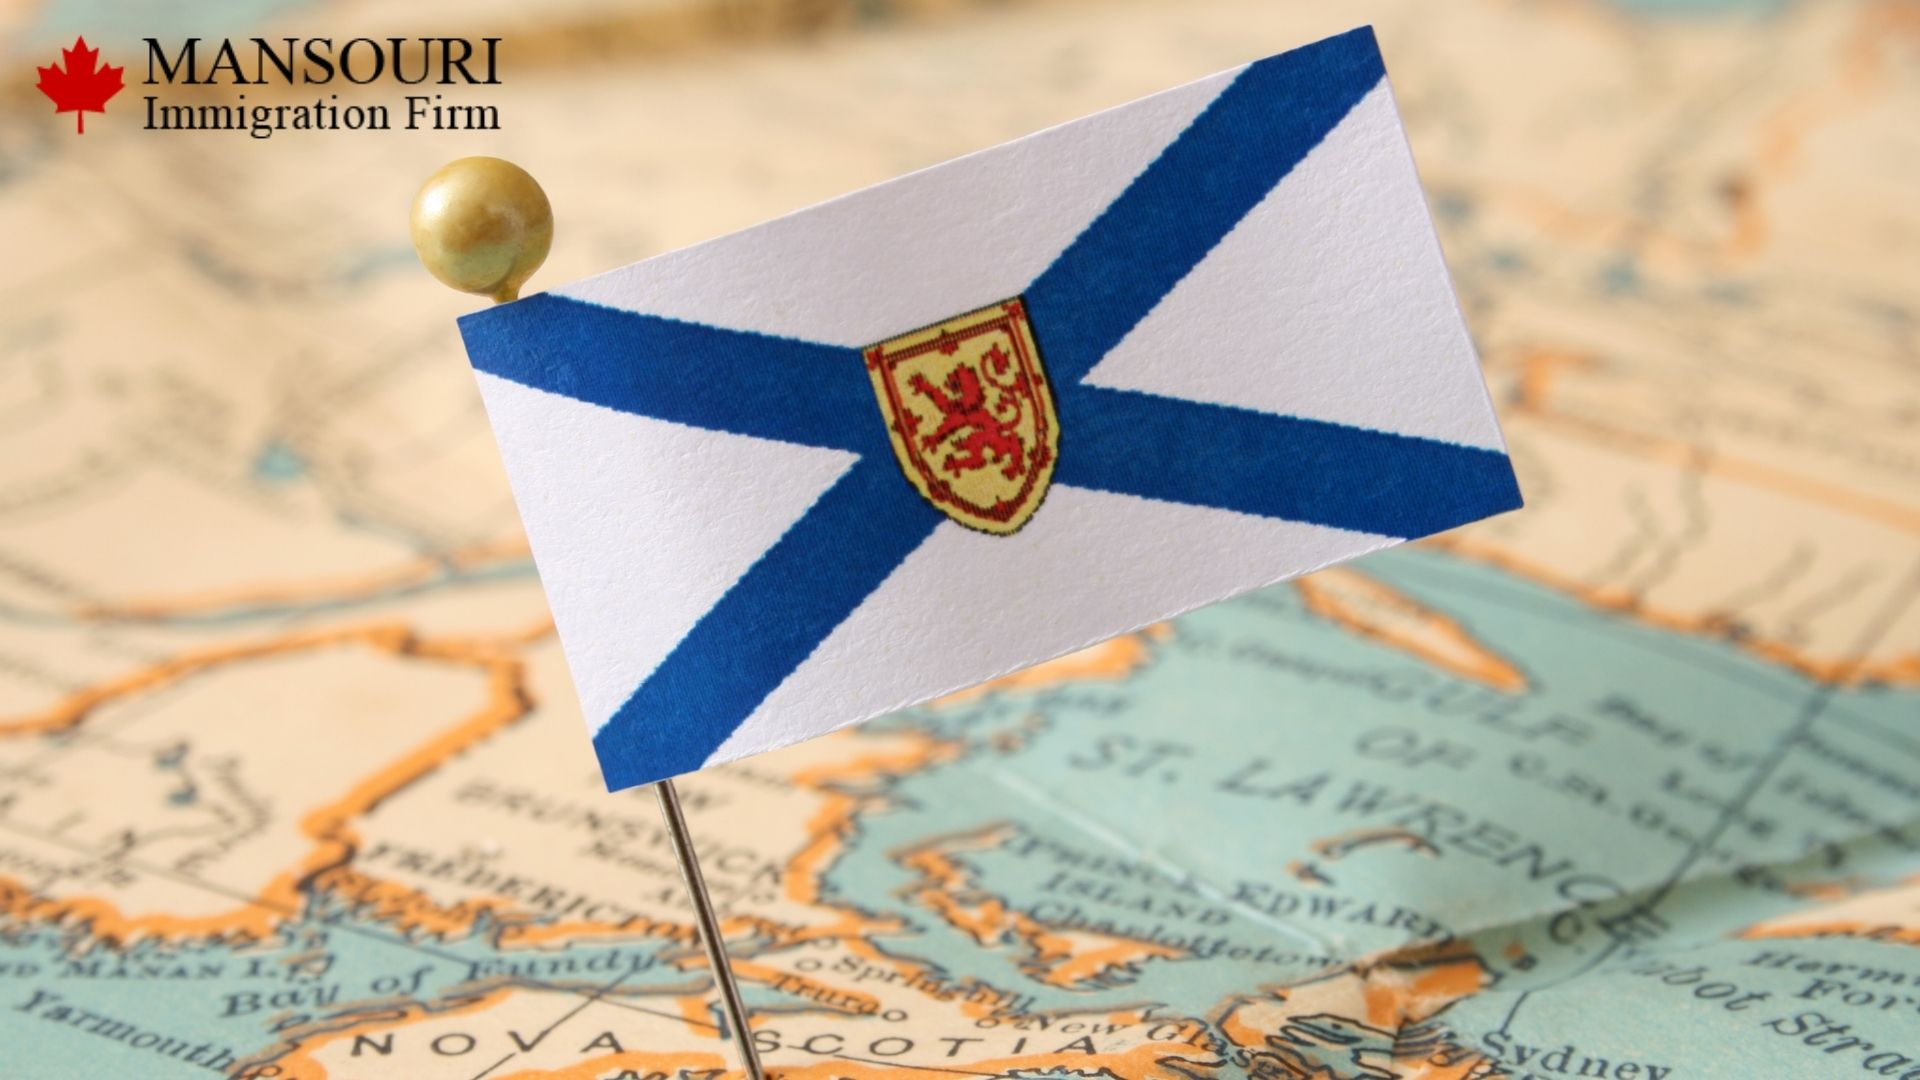 Nova Scotians want to see more newcomers in the province